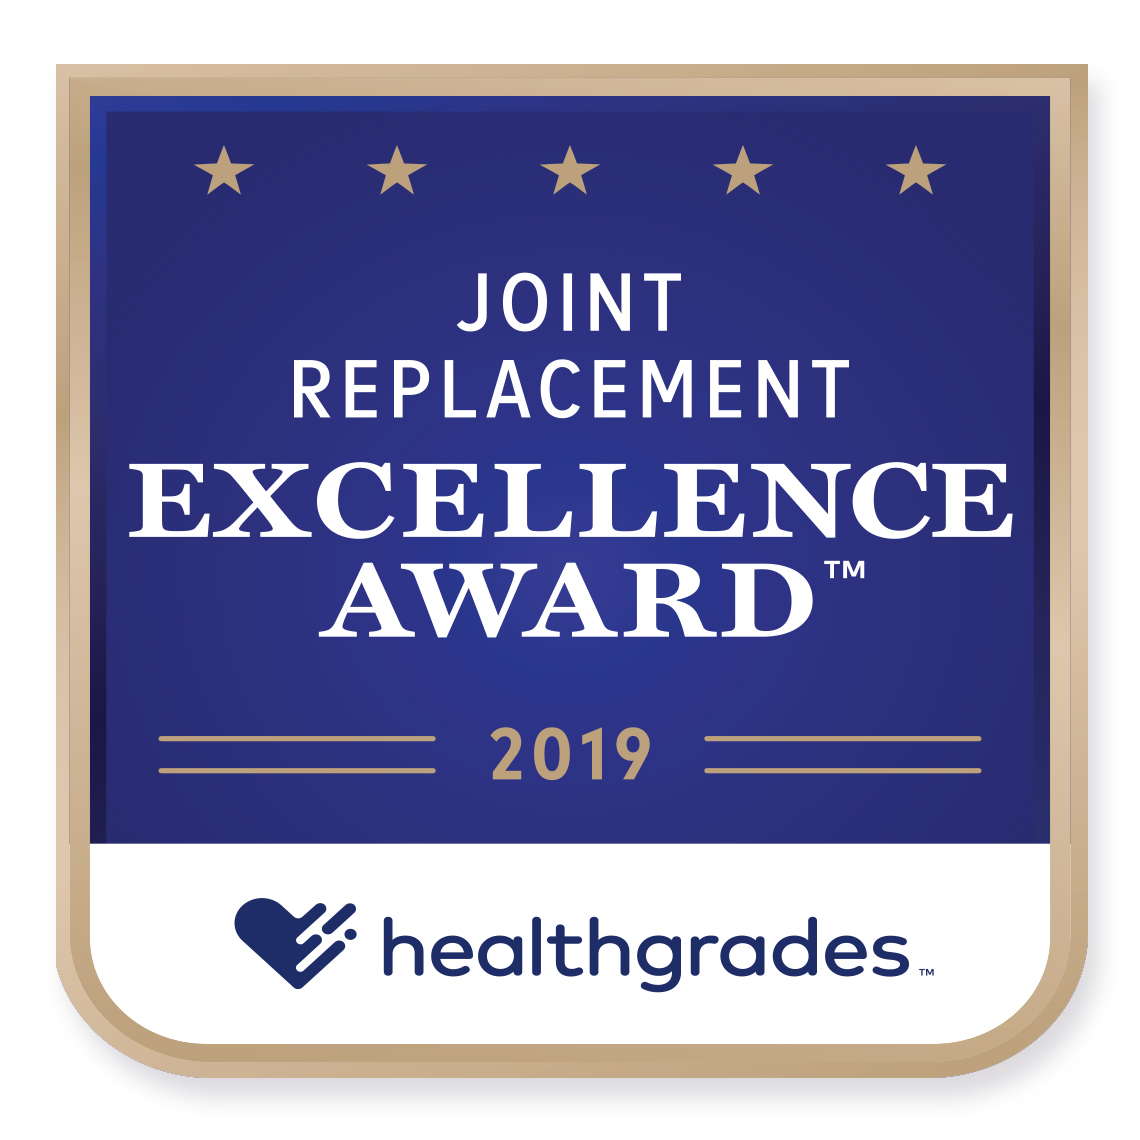 Joint Replacement Healthgrades Award 2019